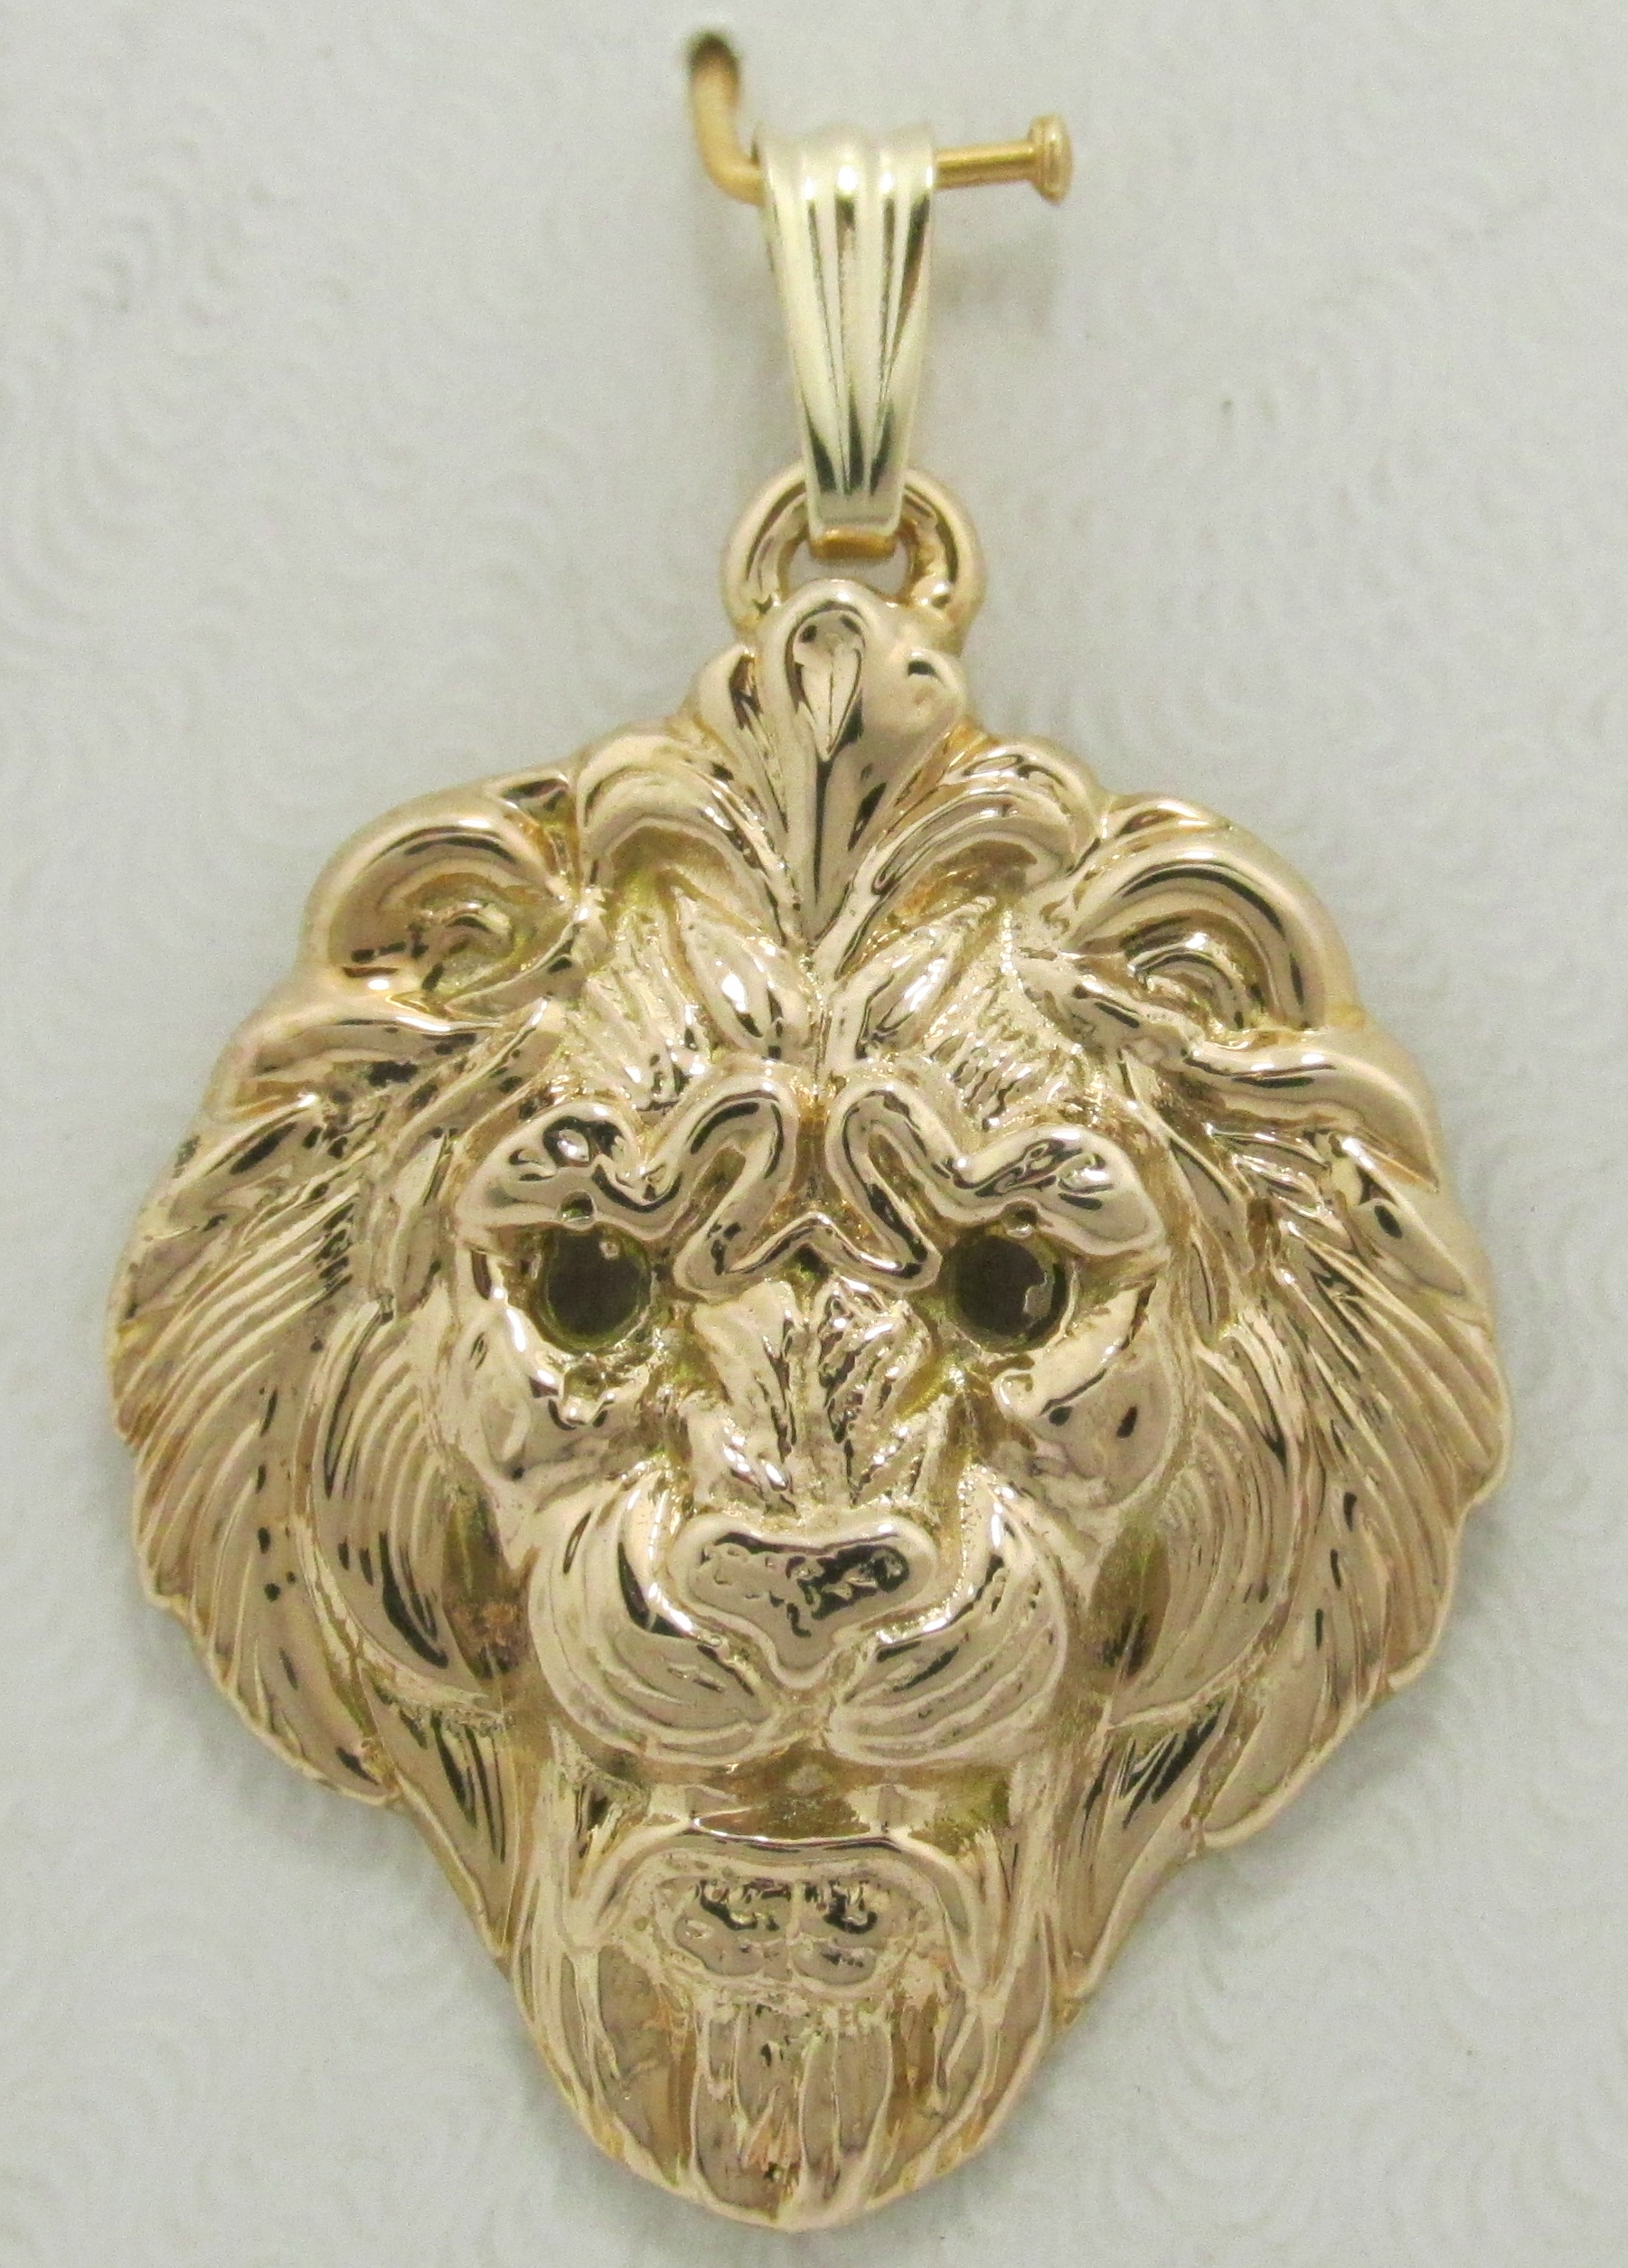 en fashion necklace for fashionjewellery fjmt online versace accessories gb jewellery women coin store lion lioncoinnecklace pendant versus uk